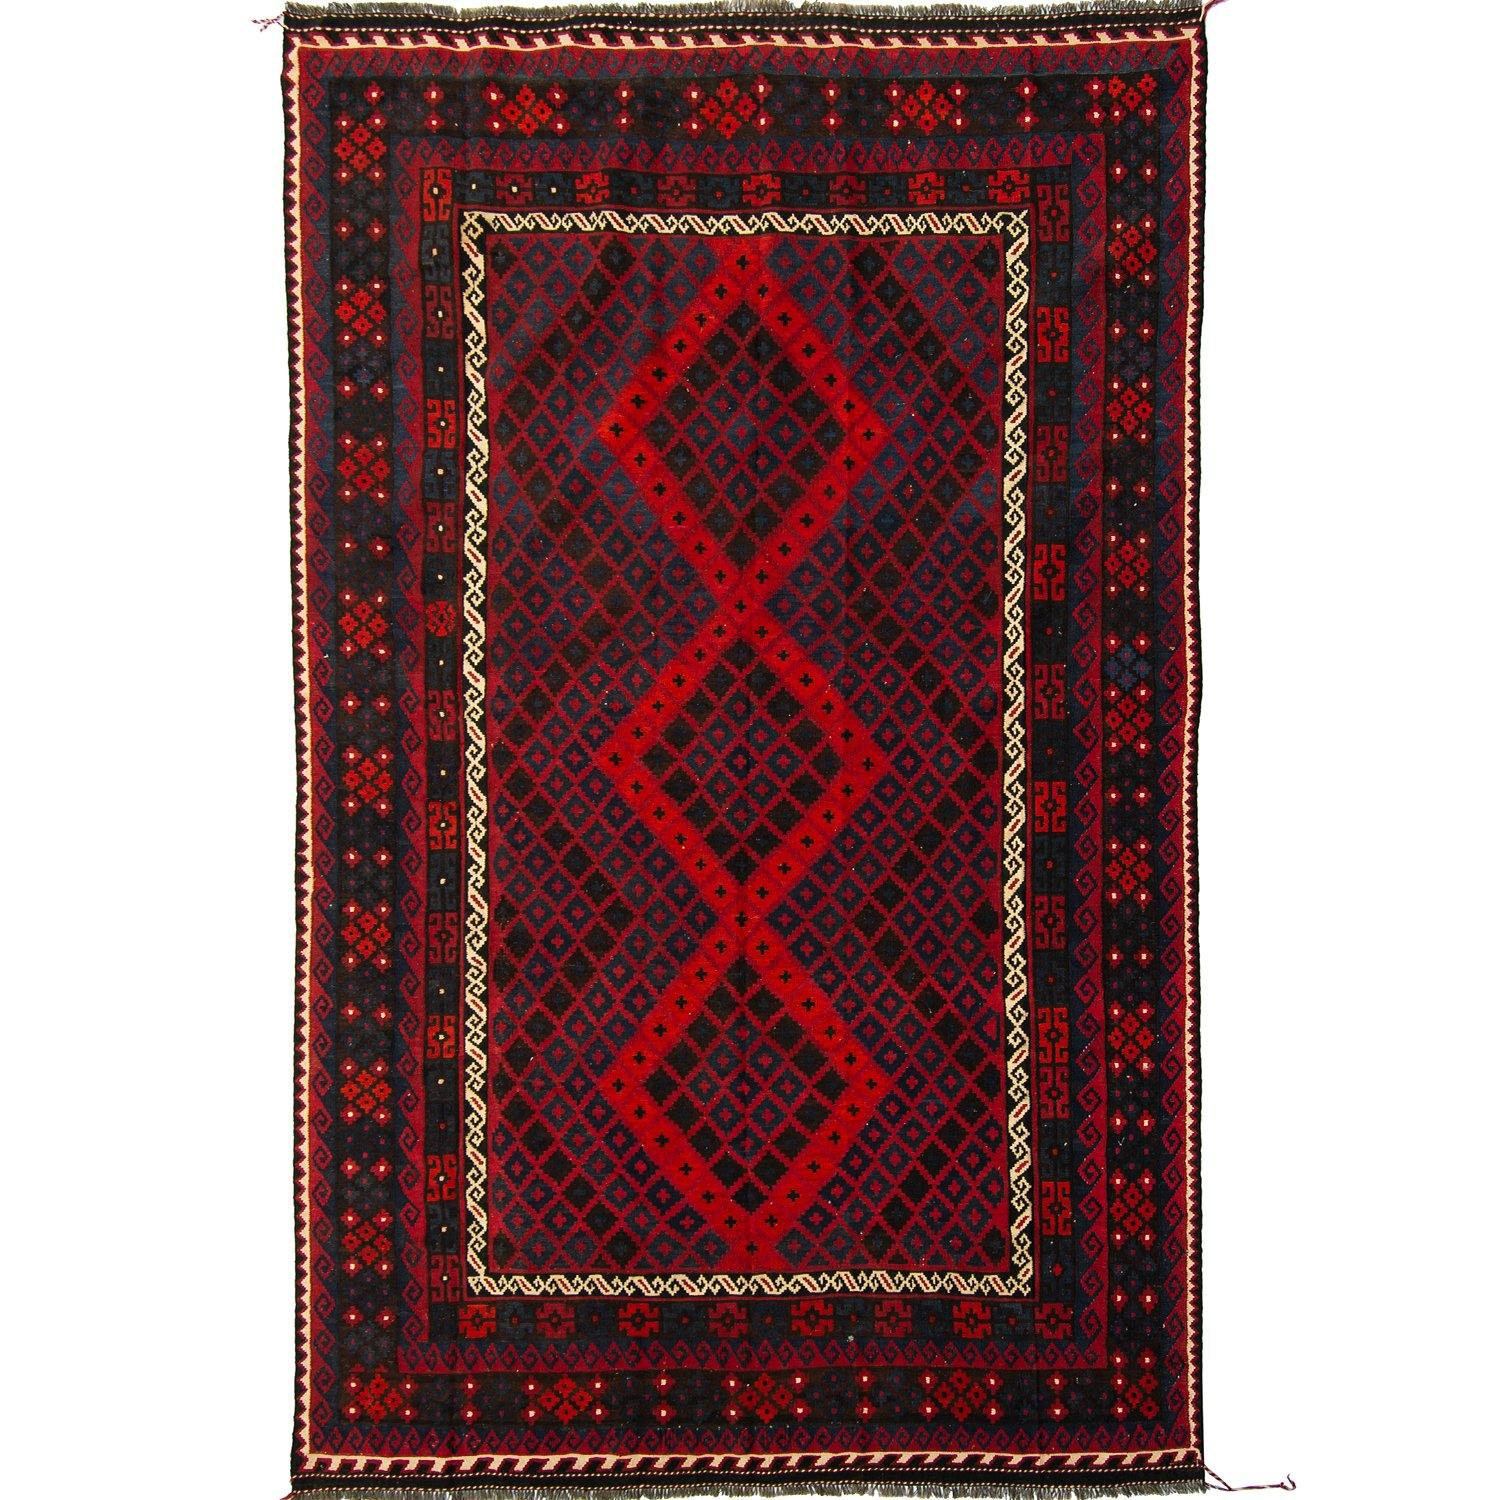 Xtra Large 100% Wool Kilim Rug 262cm x 402cm Persian-Rug | House-of-Haghi | NewMarket | Auckland | NZ | Handmade Persian Rugs | Hand Knotted Persian Rugs